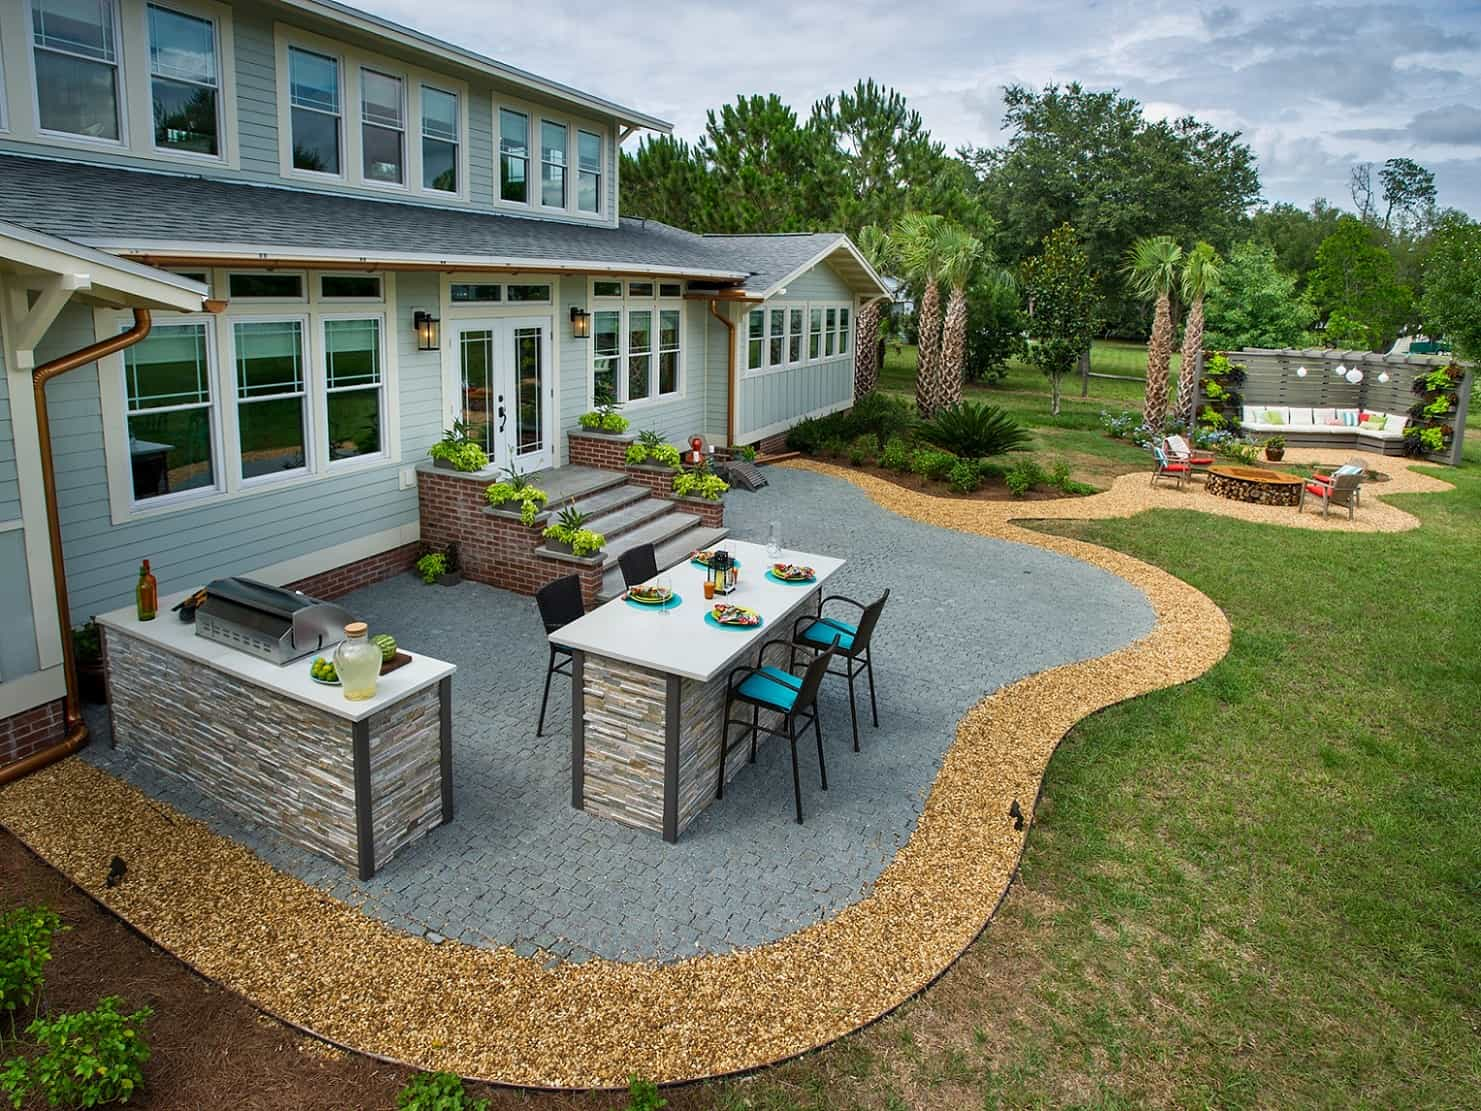 Fabulous Patios Designs That Will Leave You Speechless ... on Basic Patio Ideas id=32228